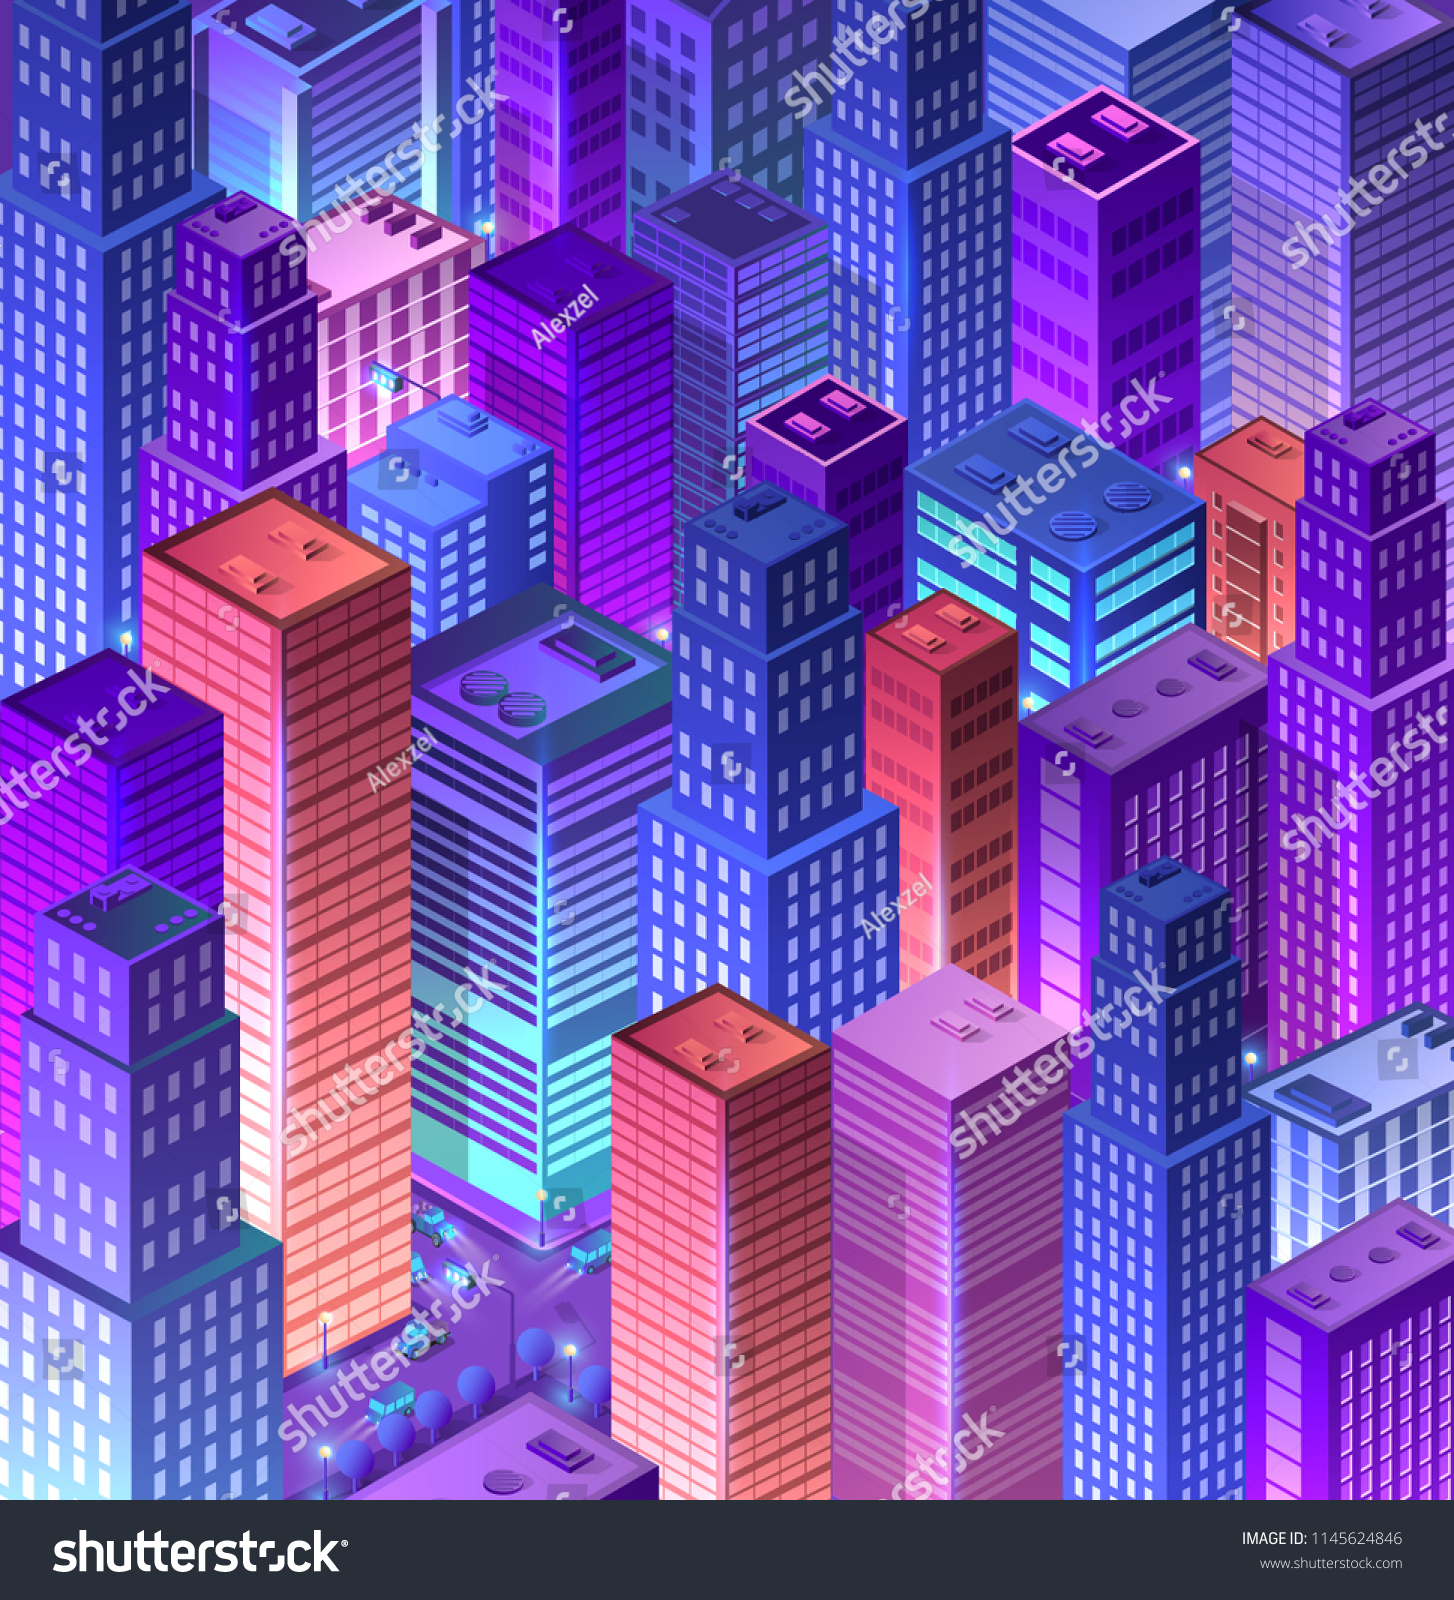 Cityscape 3 D Ultraviolet Architecture City Isometric Stock Vector Diagram Of A Network In Multistory Building 3d From Urban Street Skyscraper Concept Business Violet